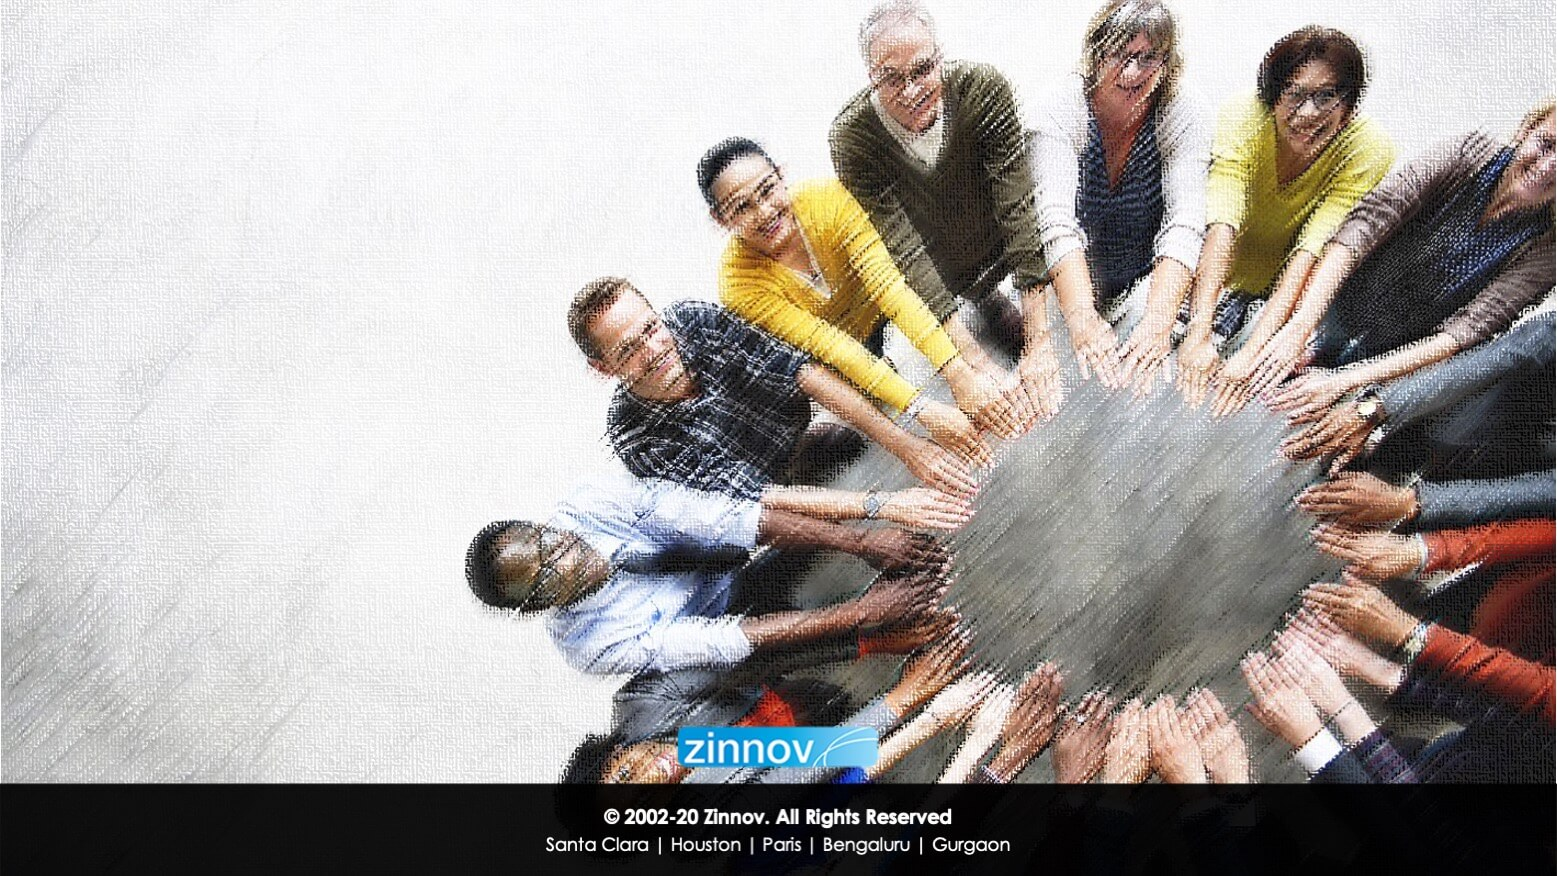 Inclusion and Diversity Maturity Benchmark - Creating an Inclusive Workplace